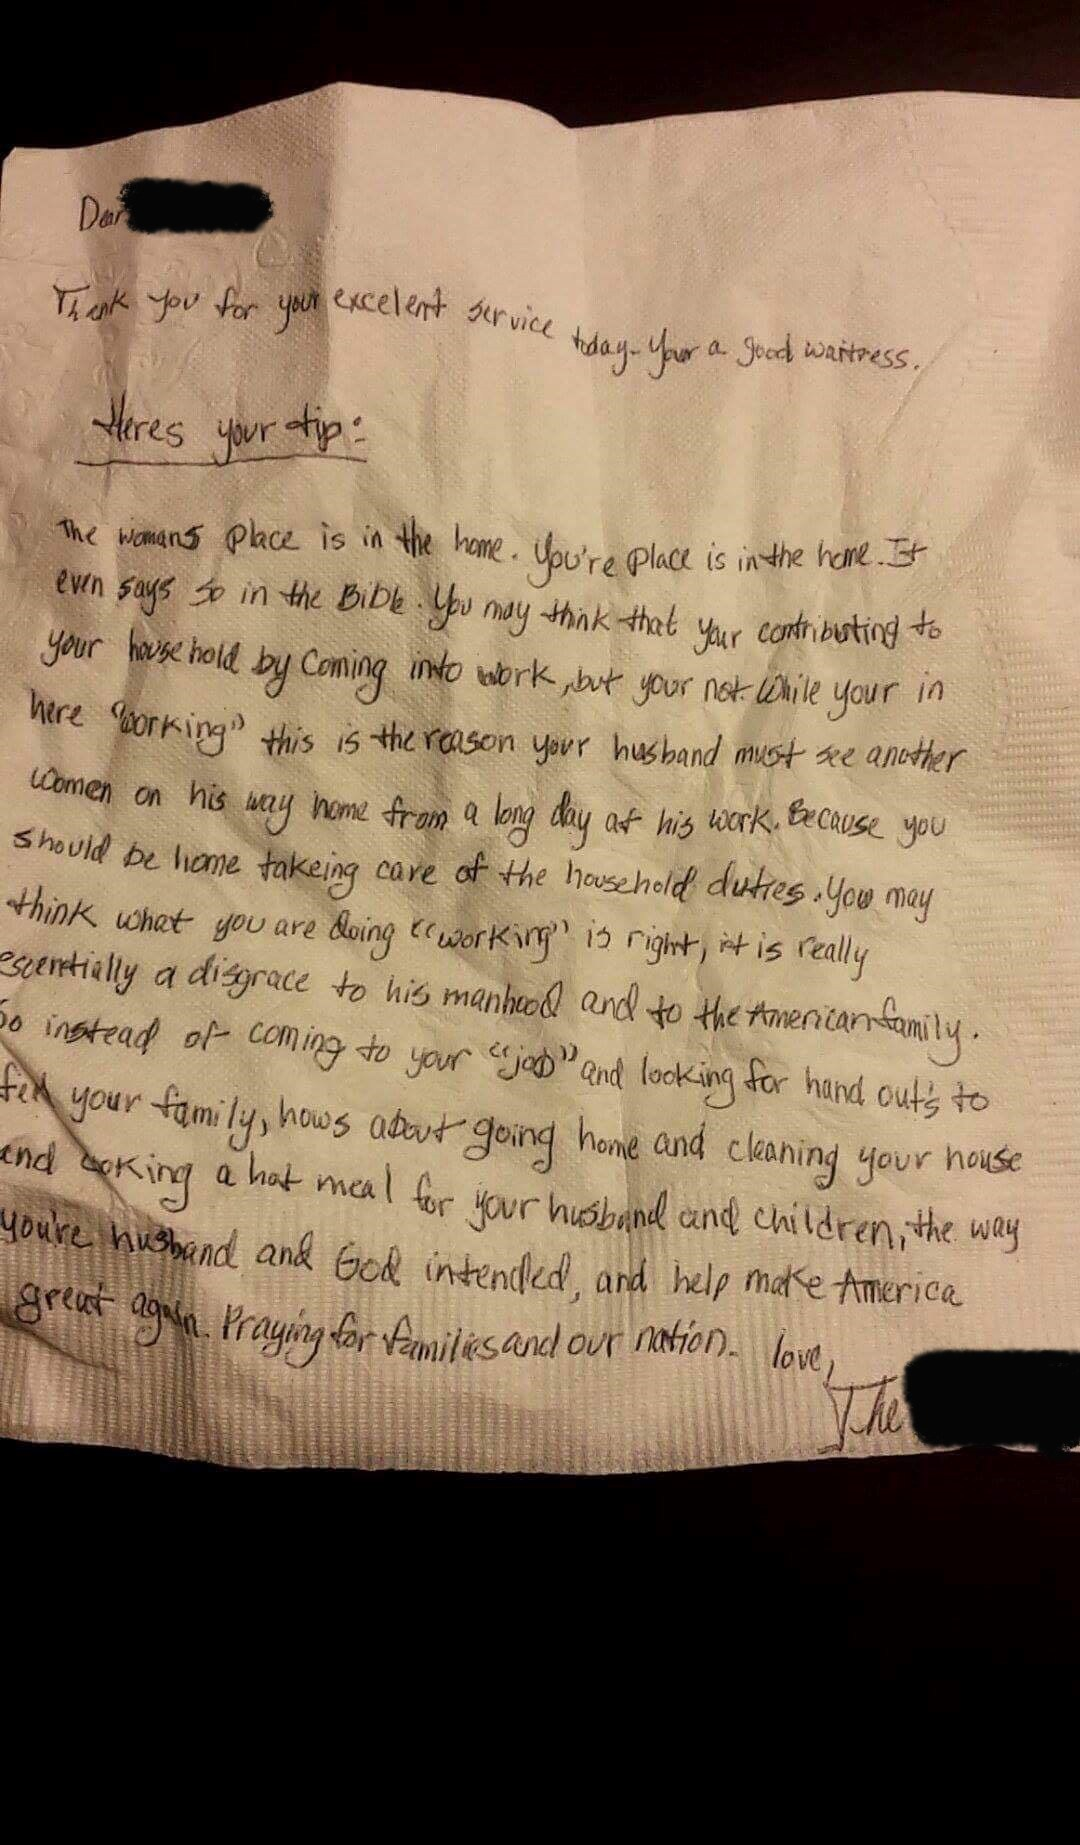 the note written on a napkin